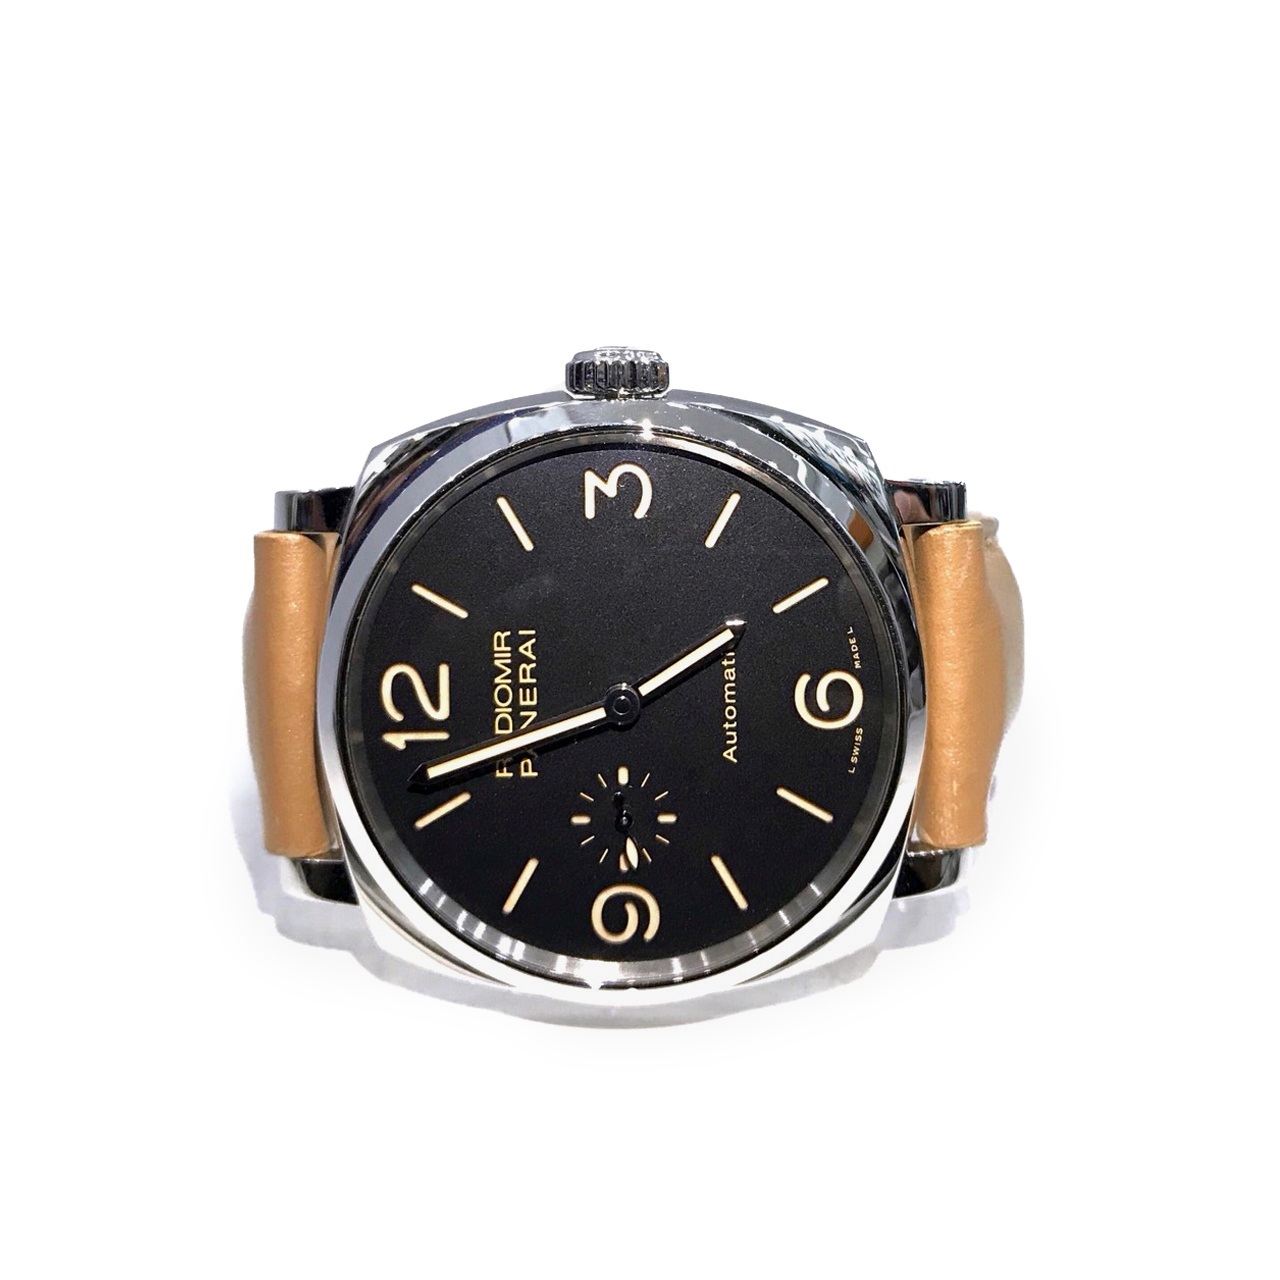 Used Officine Panerai 572 Series Q ( Y 2015 )